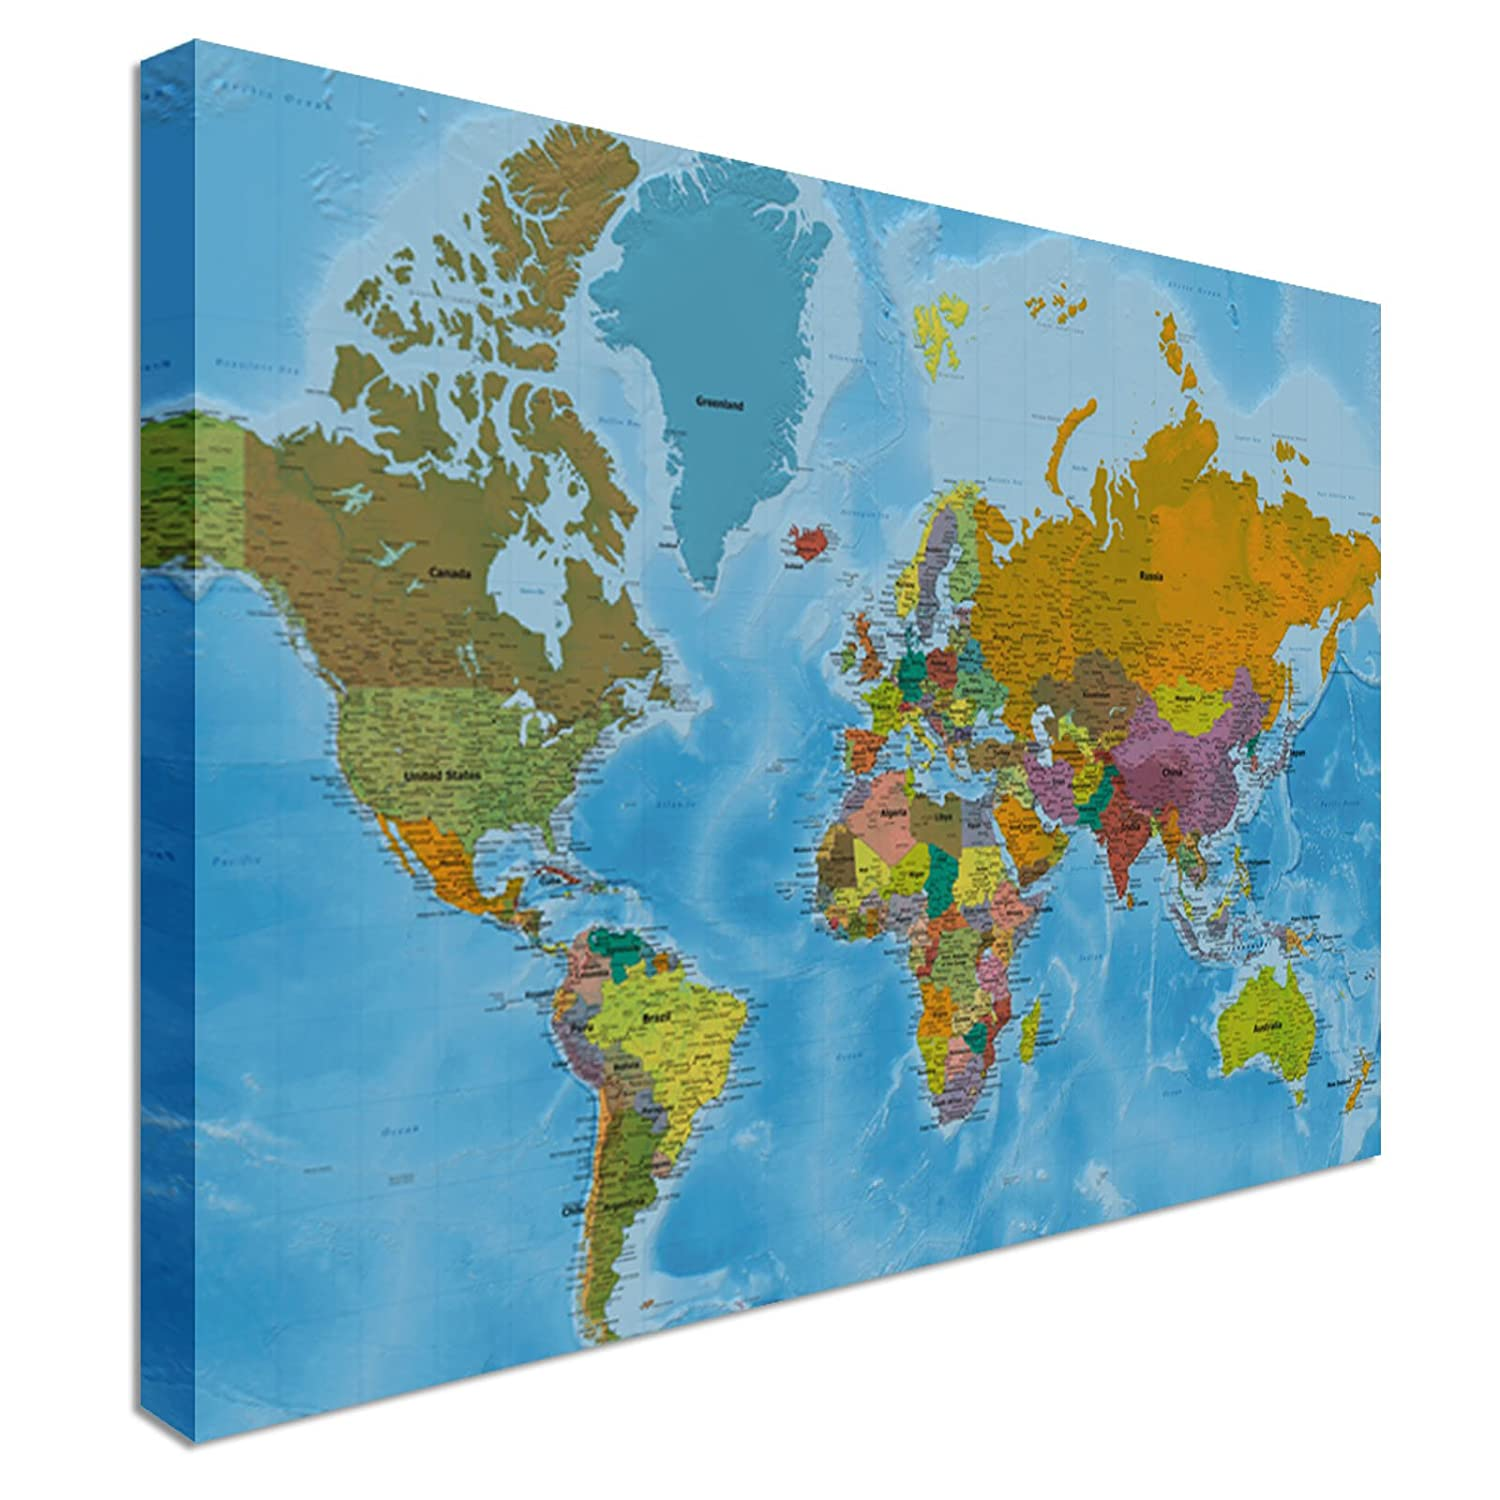 World map highest detail online hi res quality canvas wall world map highest detail online hi res quality canvas wall art pictures 48 x 30 inches amazon kitchen home gumiabroncs Gallery